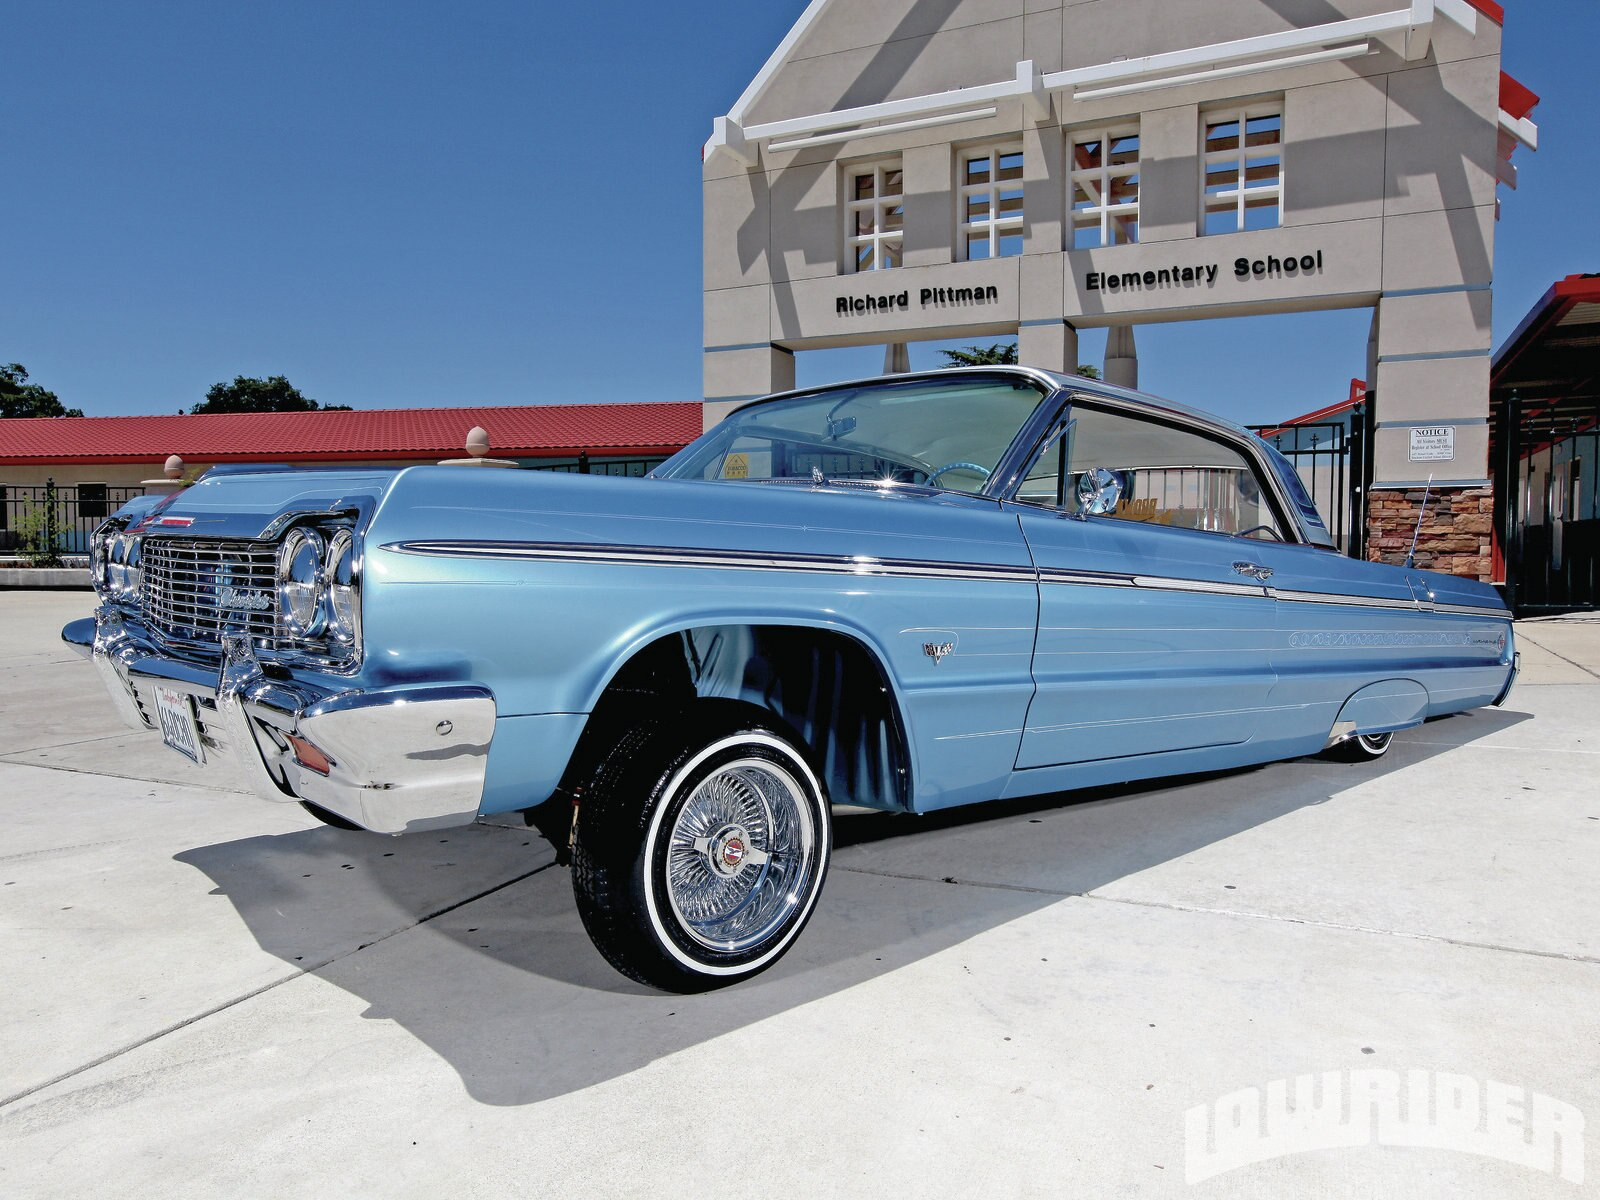 epcp_1105_01_z-1964_chevrolet_impala-side_view2